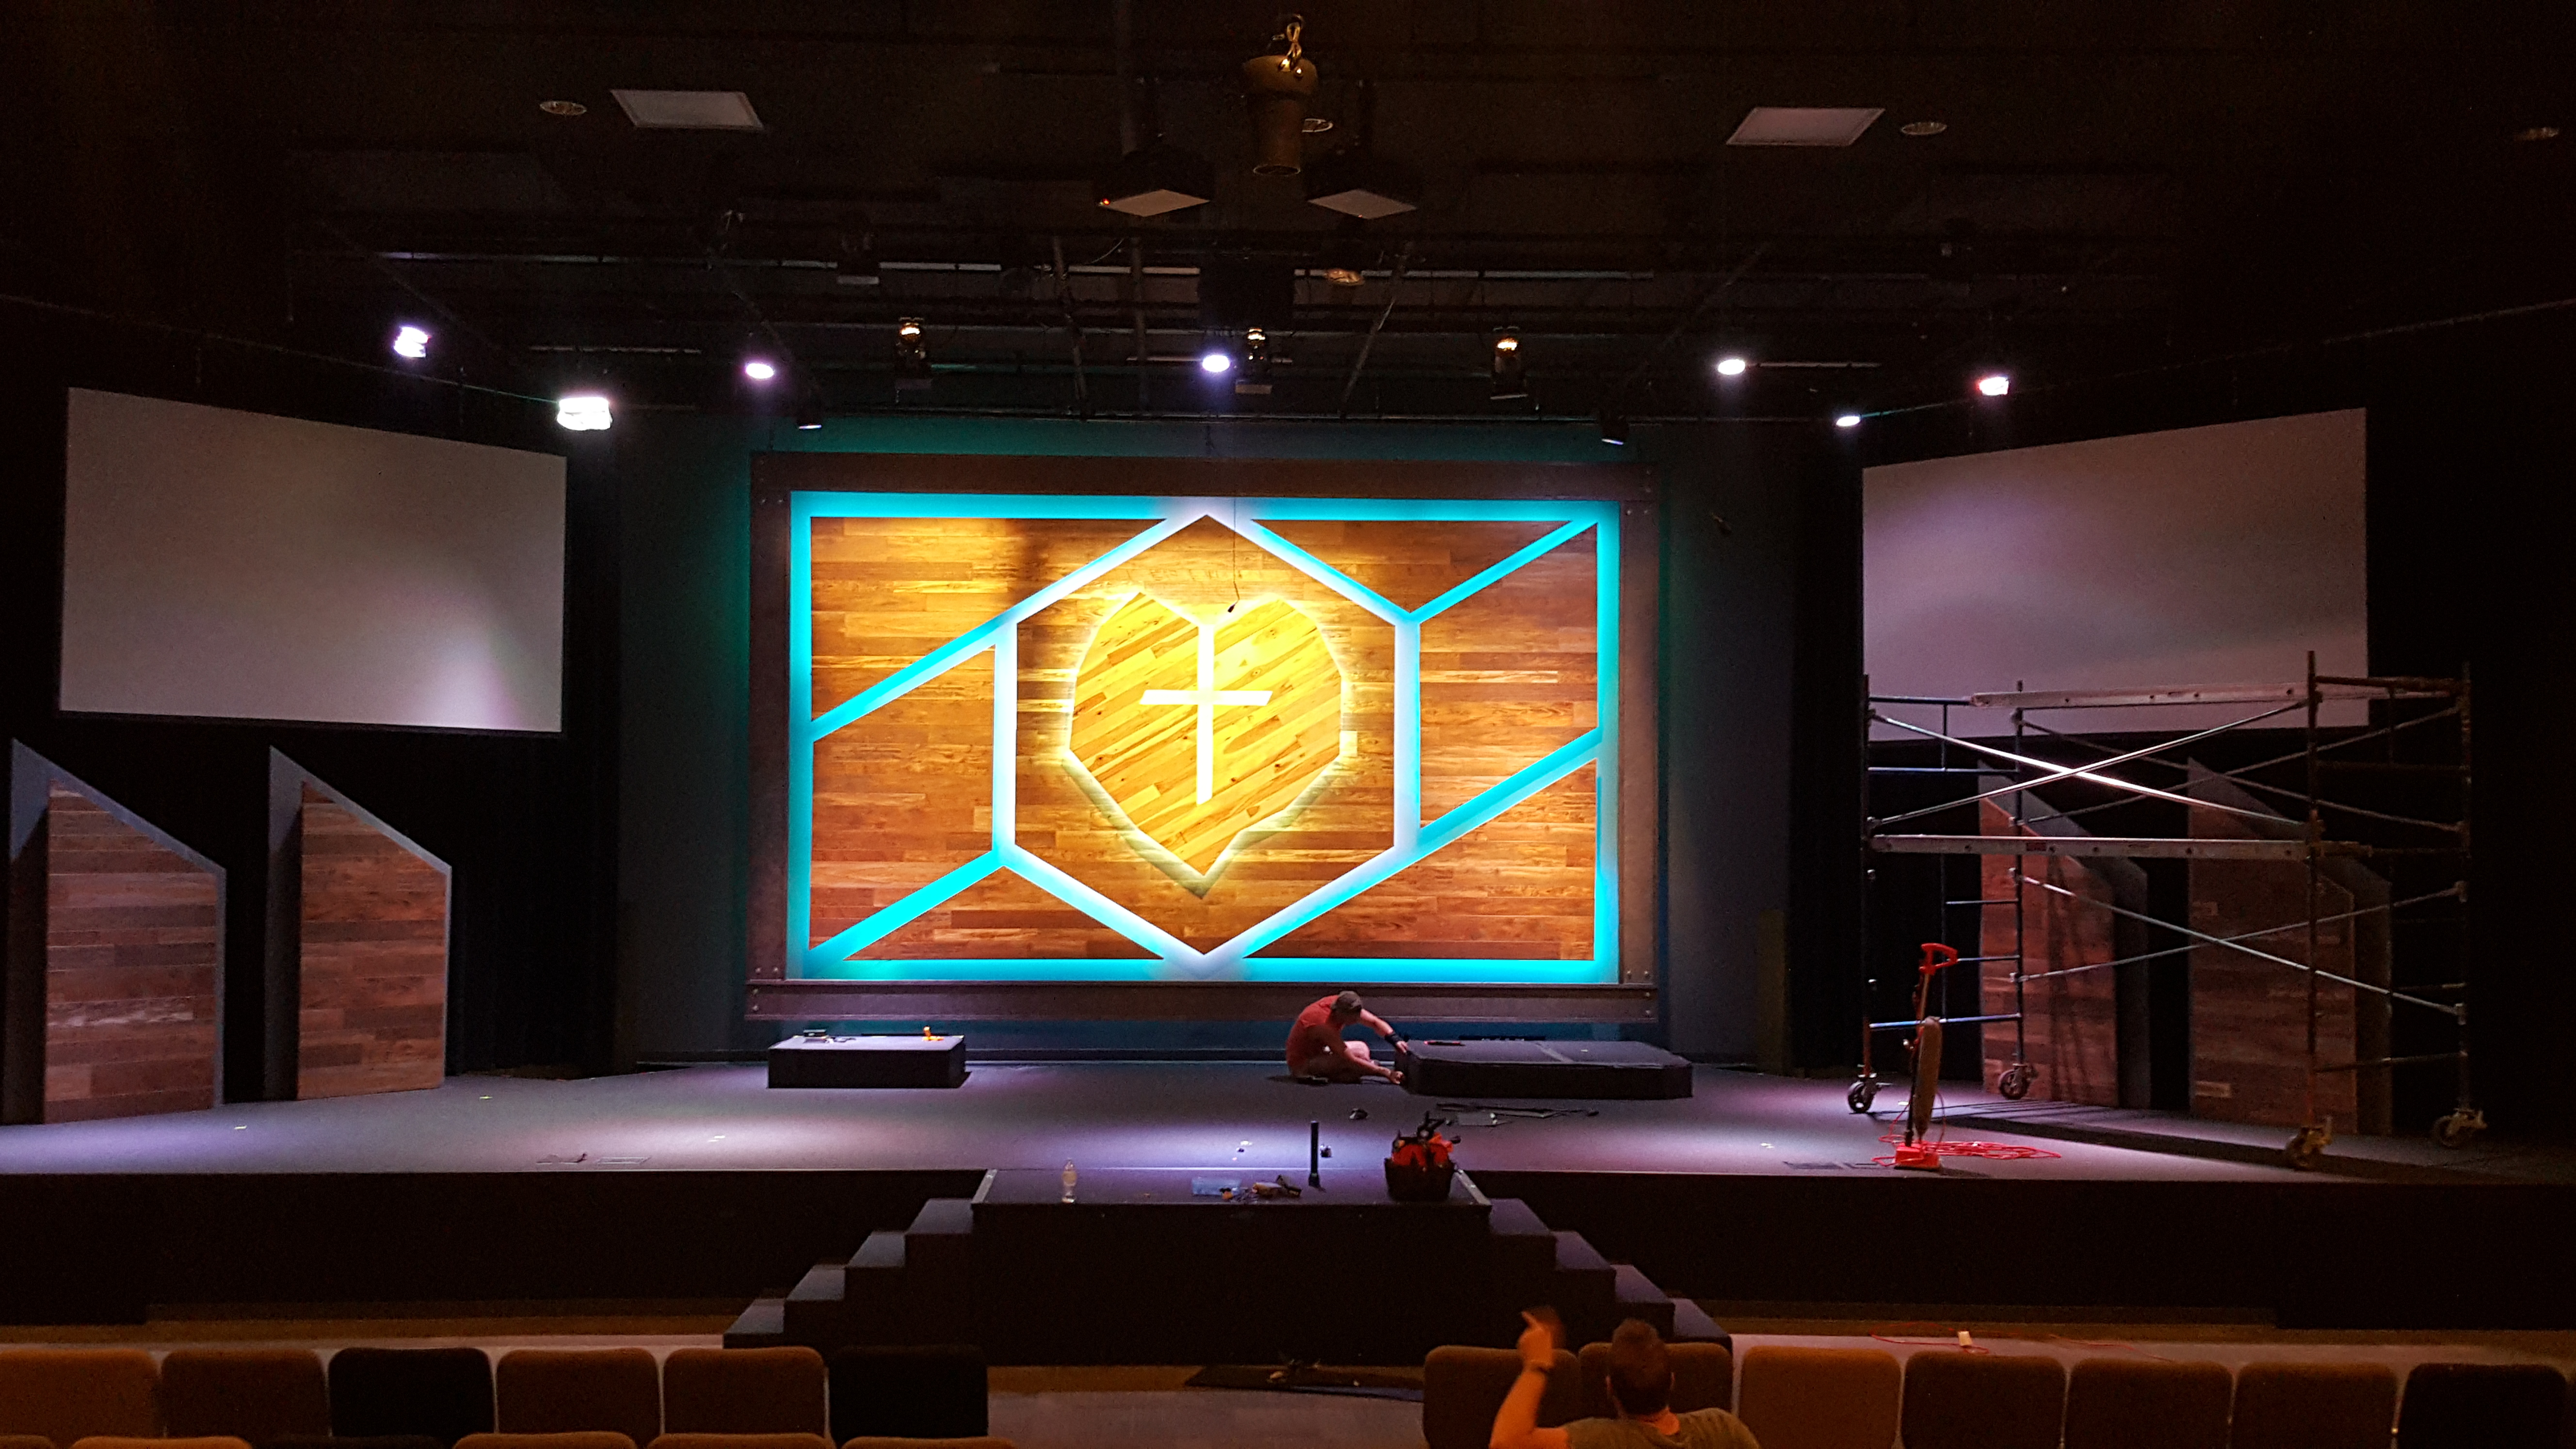 Cracked Wood Church Stage Design Ideas Scenic Sets And Stage Design Ideas From Churches Around The Globe